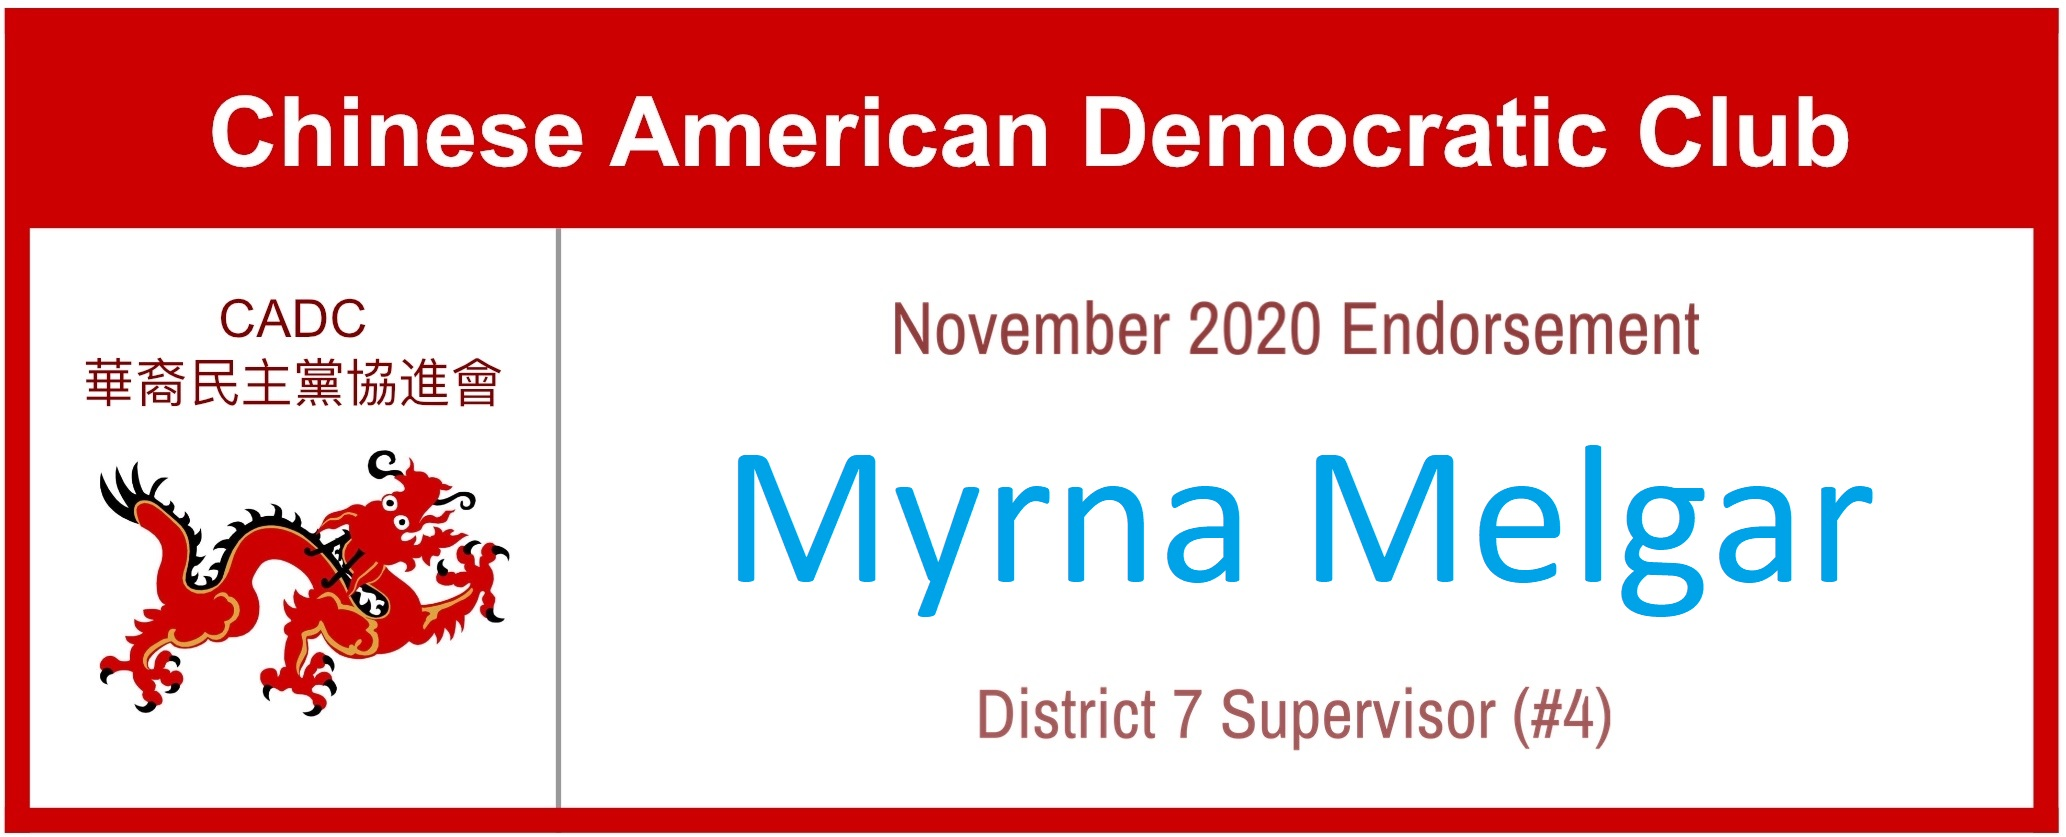 Myrna Melgar for District 7 Supervisor - CADC #4 Endorsement November 2020